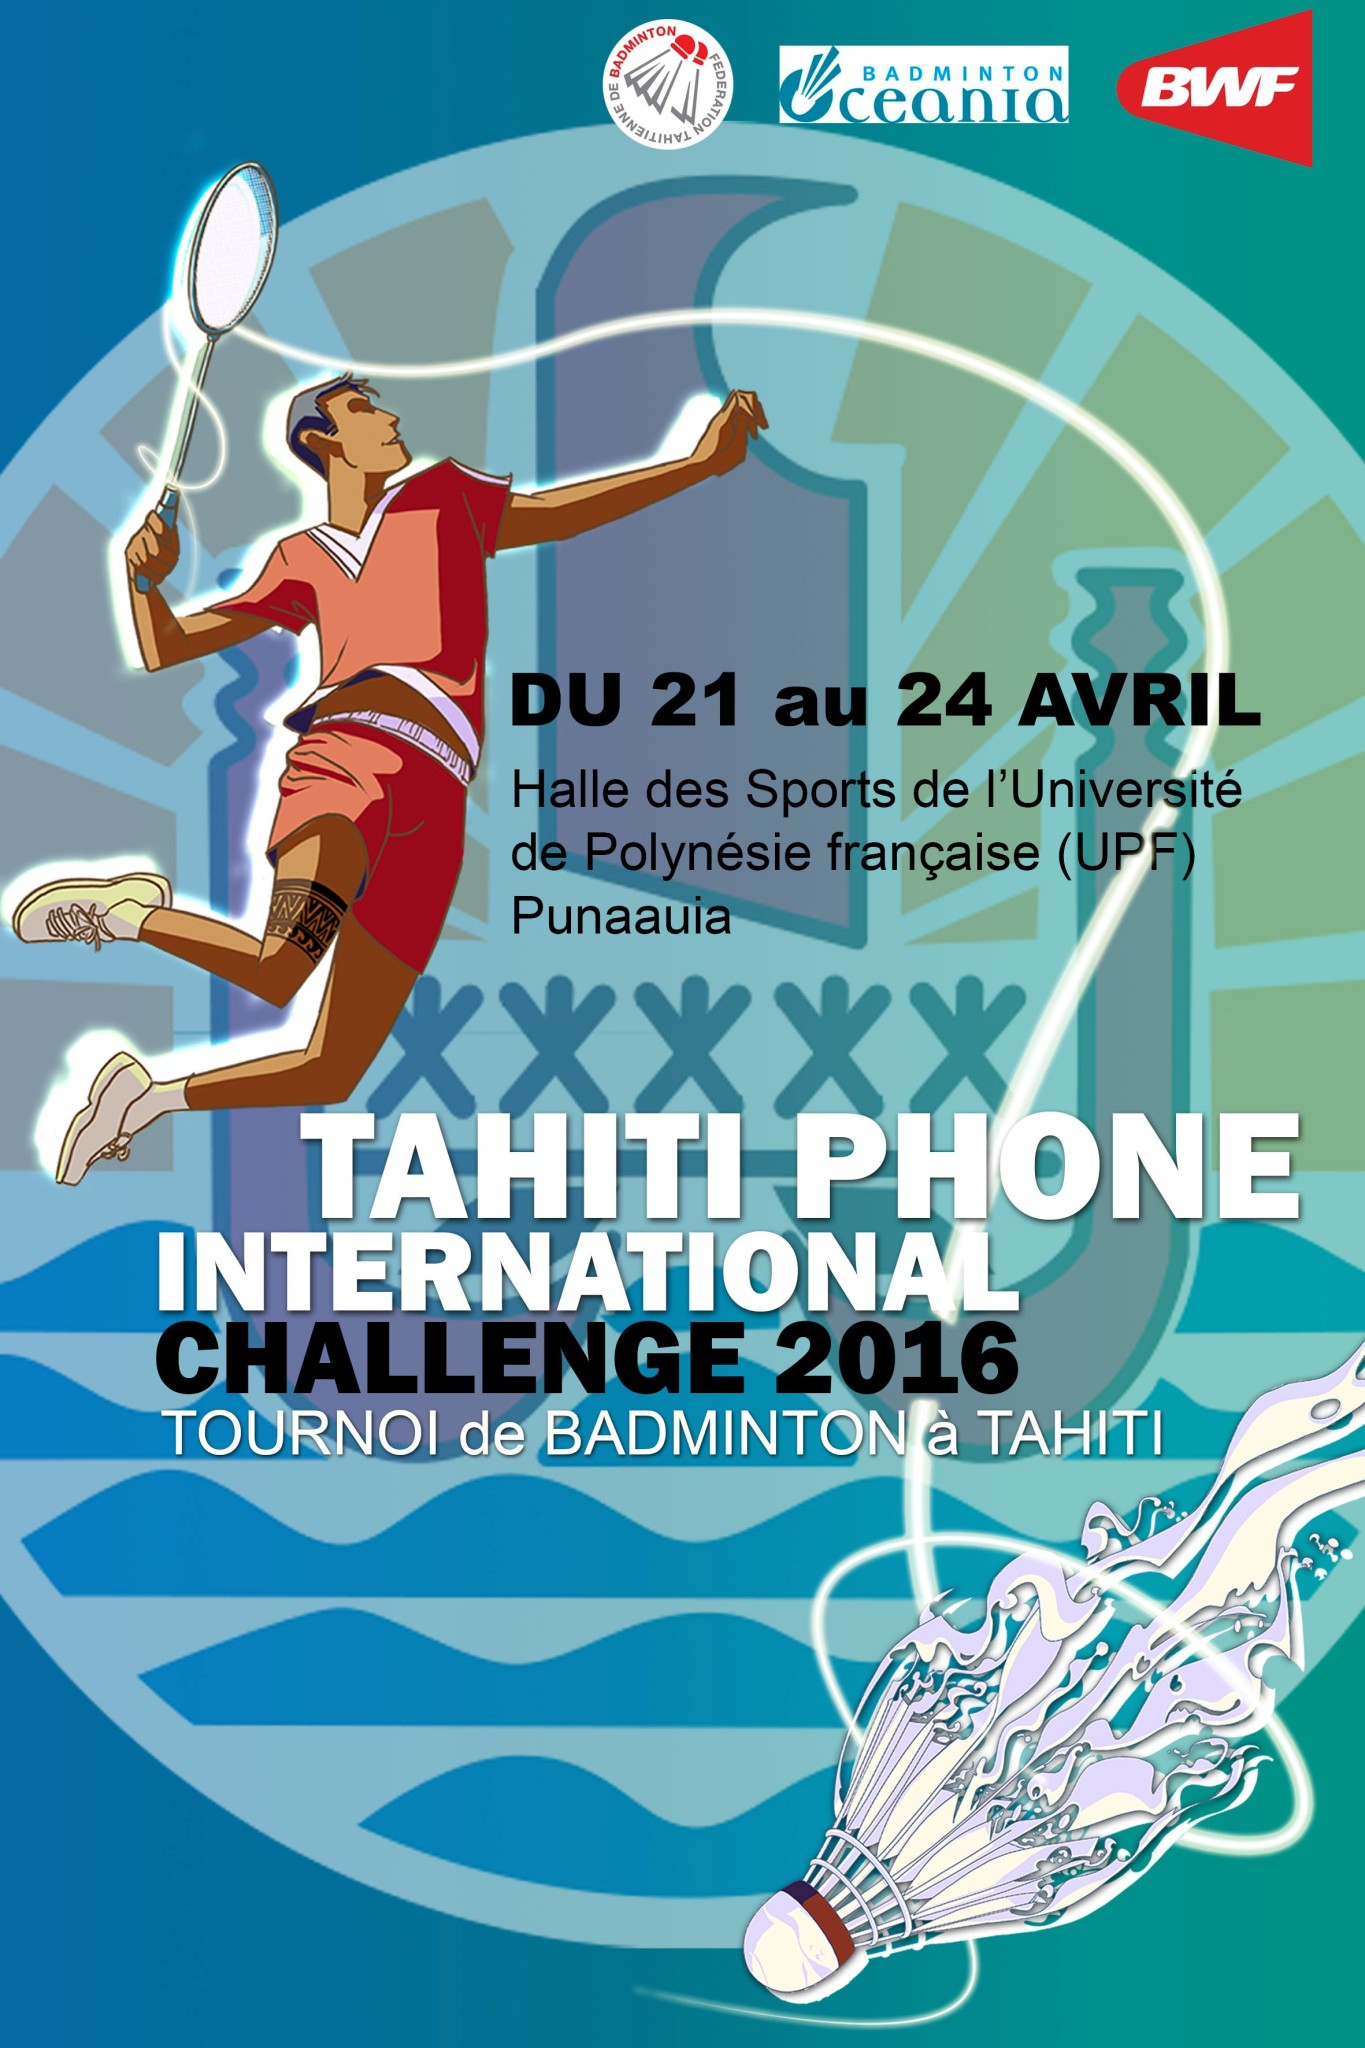 Badminton – International Challenge 2016 : Plus de 70 étrangers inscrits